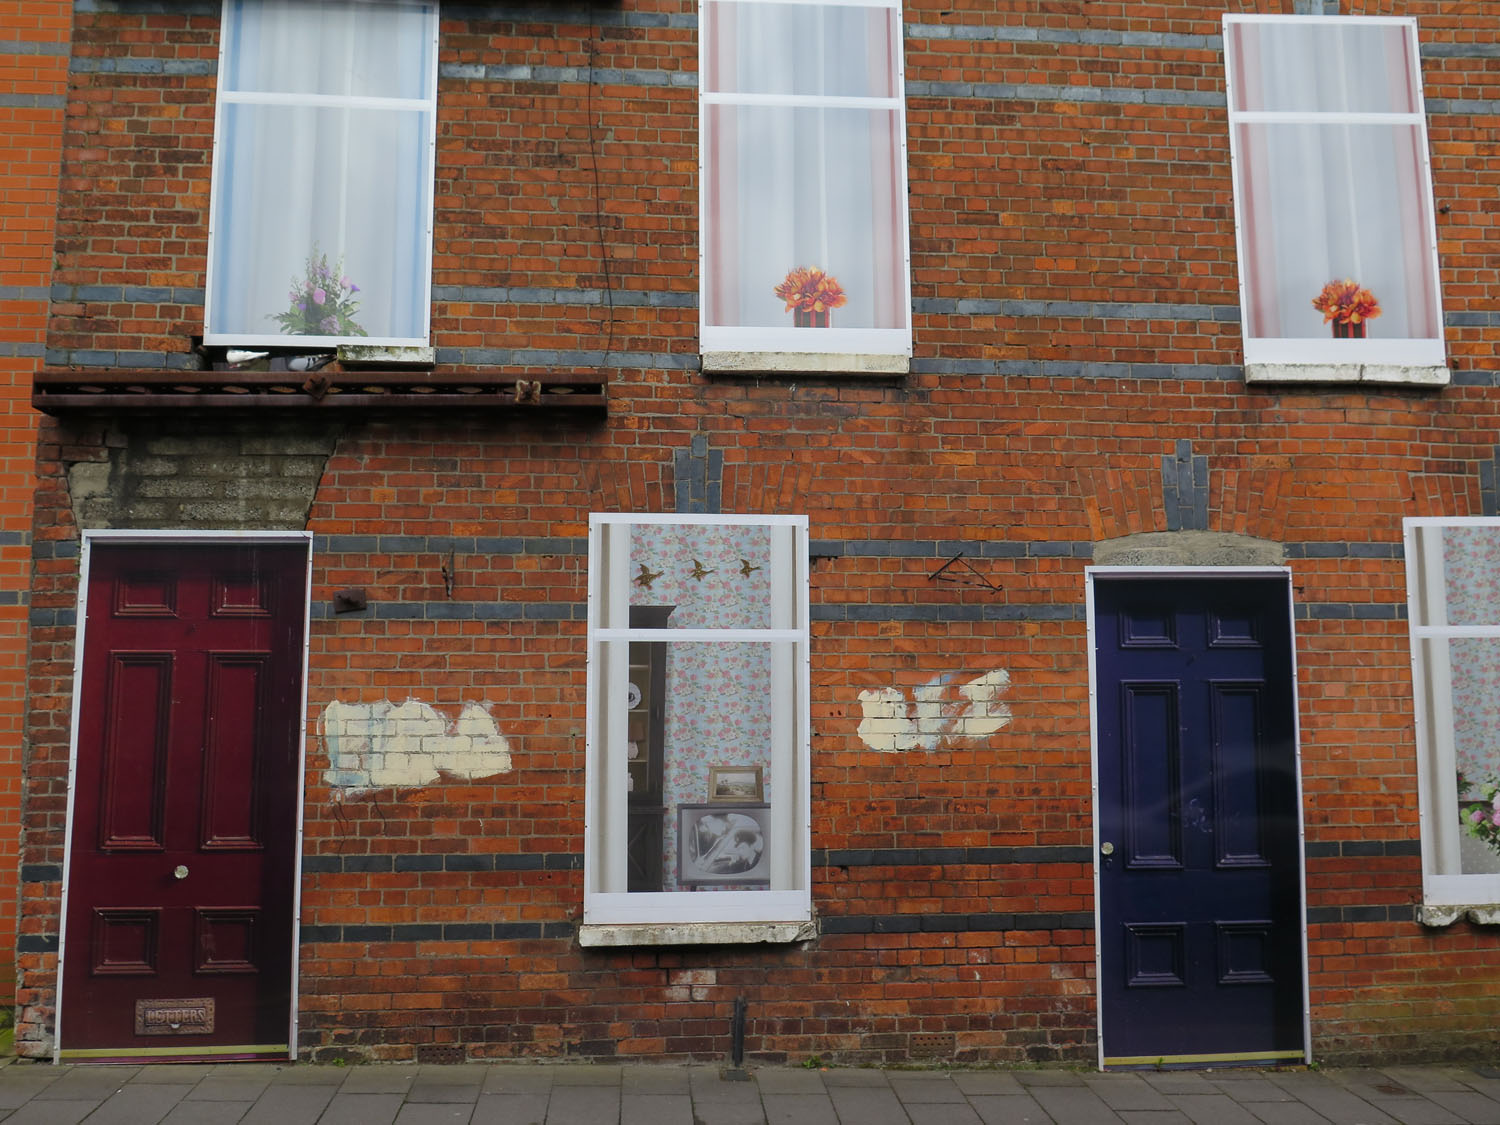 Northern-Ireland-Derry-Londonderry-Street-Scenes-Fake-Doors-And-Windows